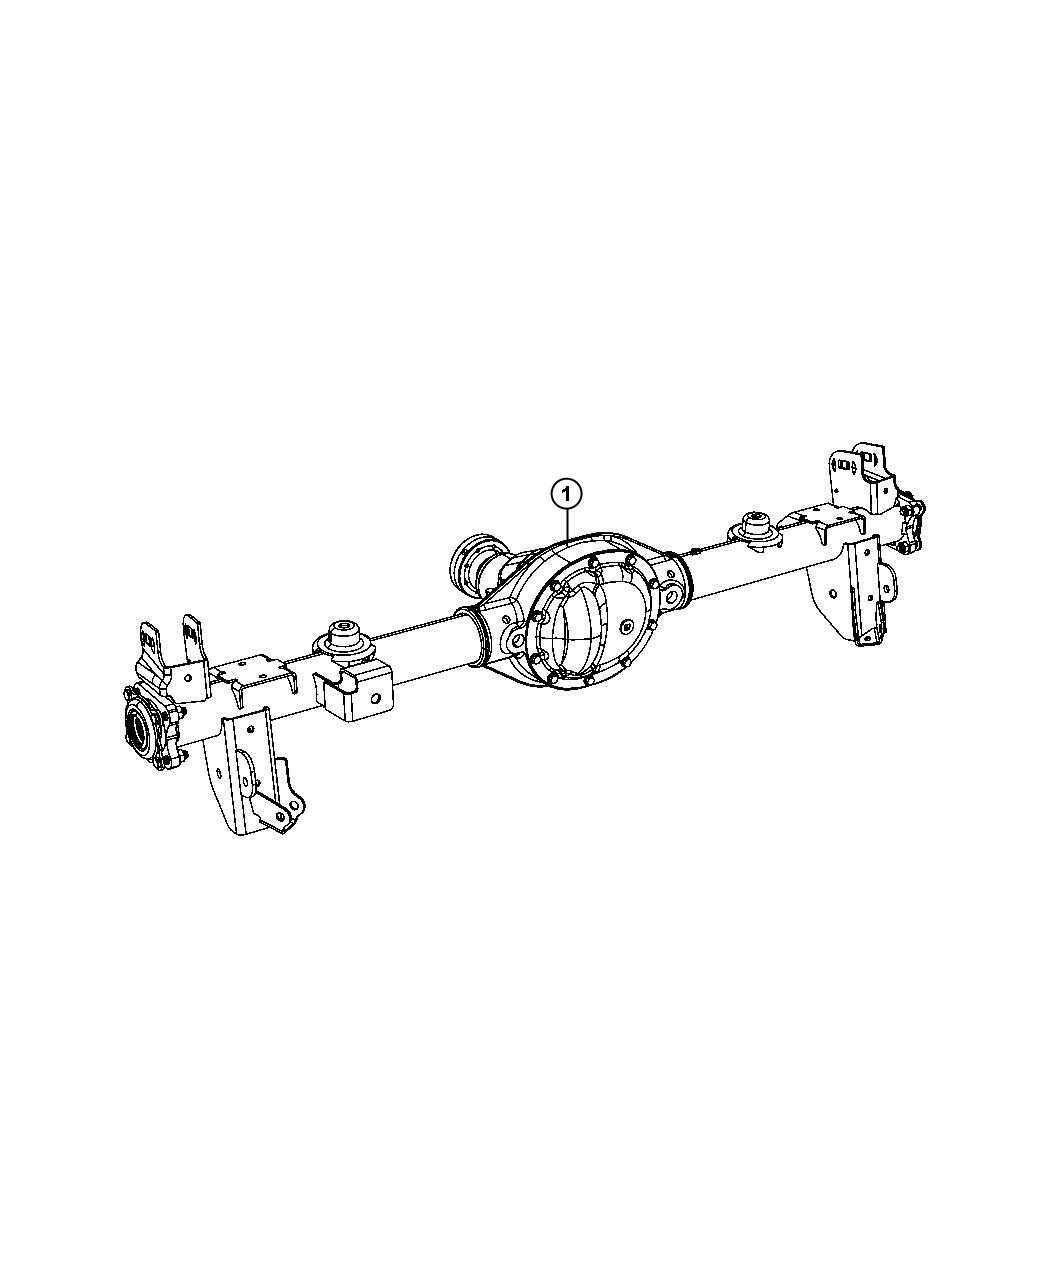 2013 Jeep Wrangler Axle Assembly